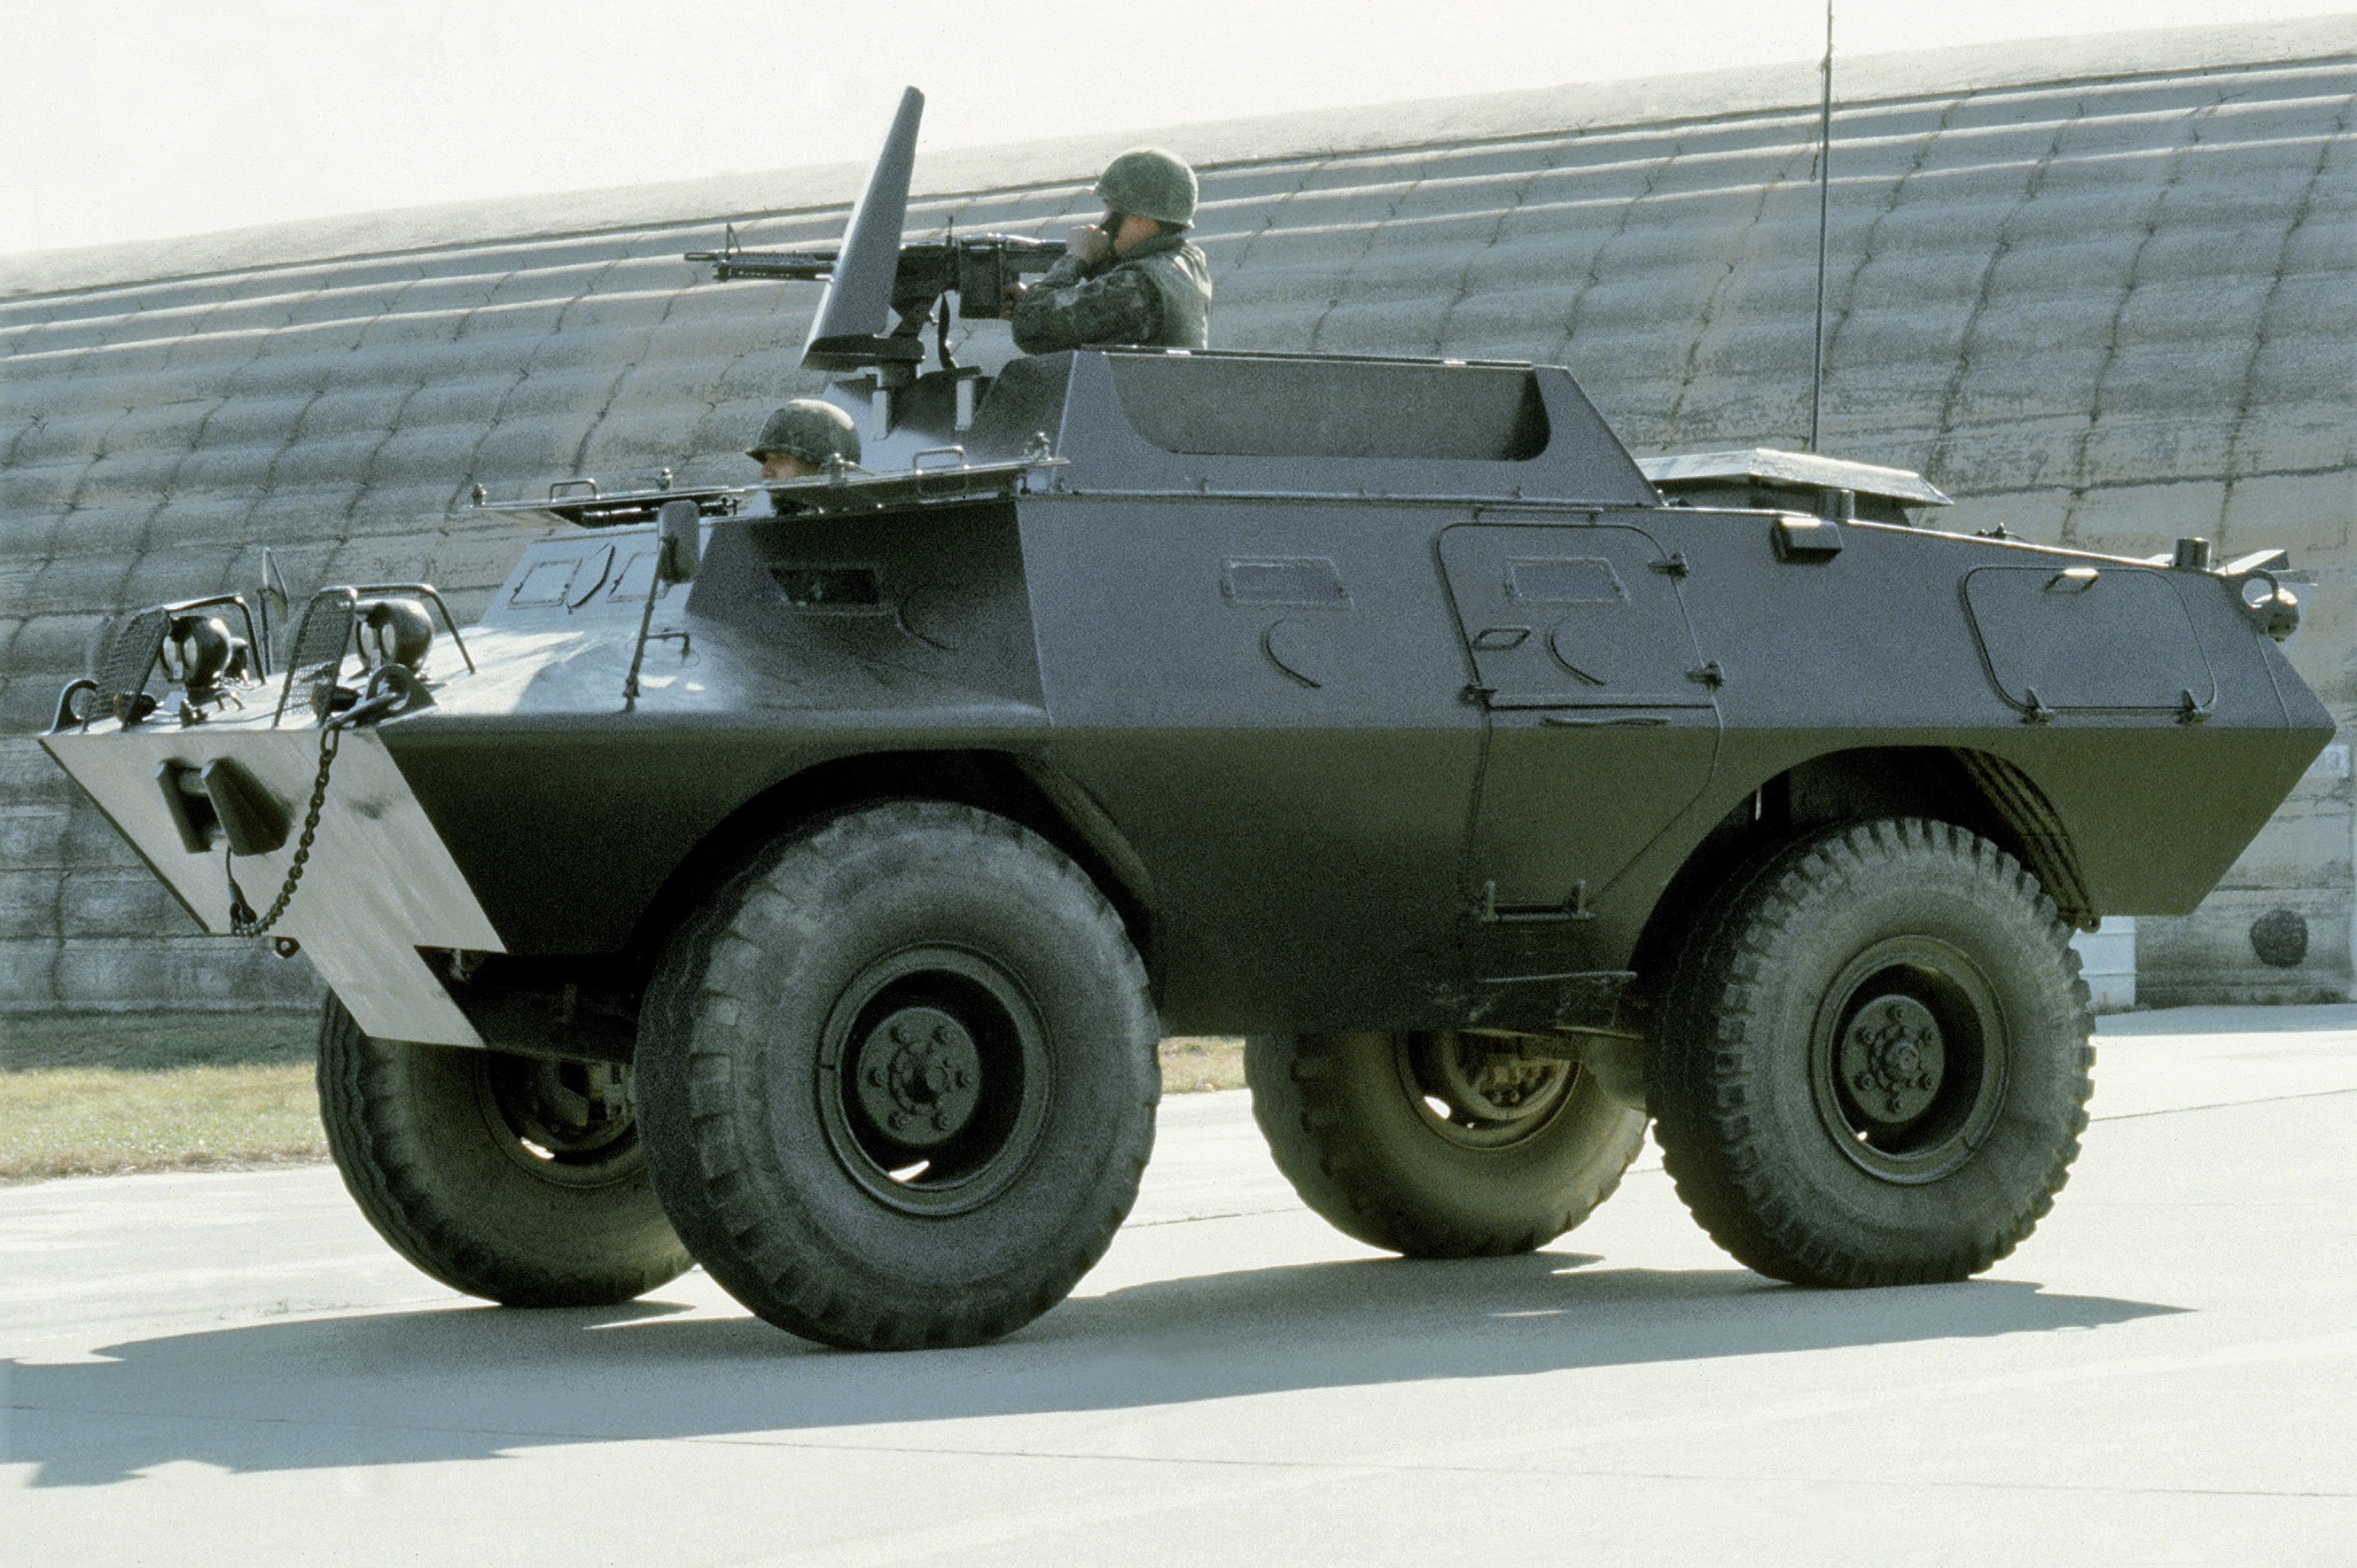 Cadillac Gage Commando - Wikipedia